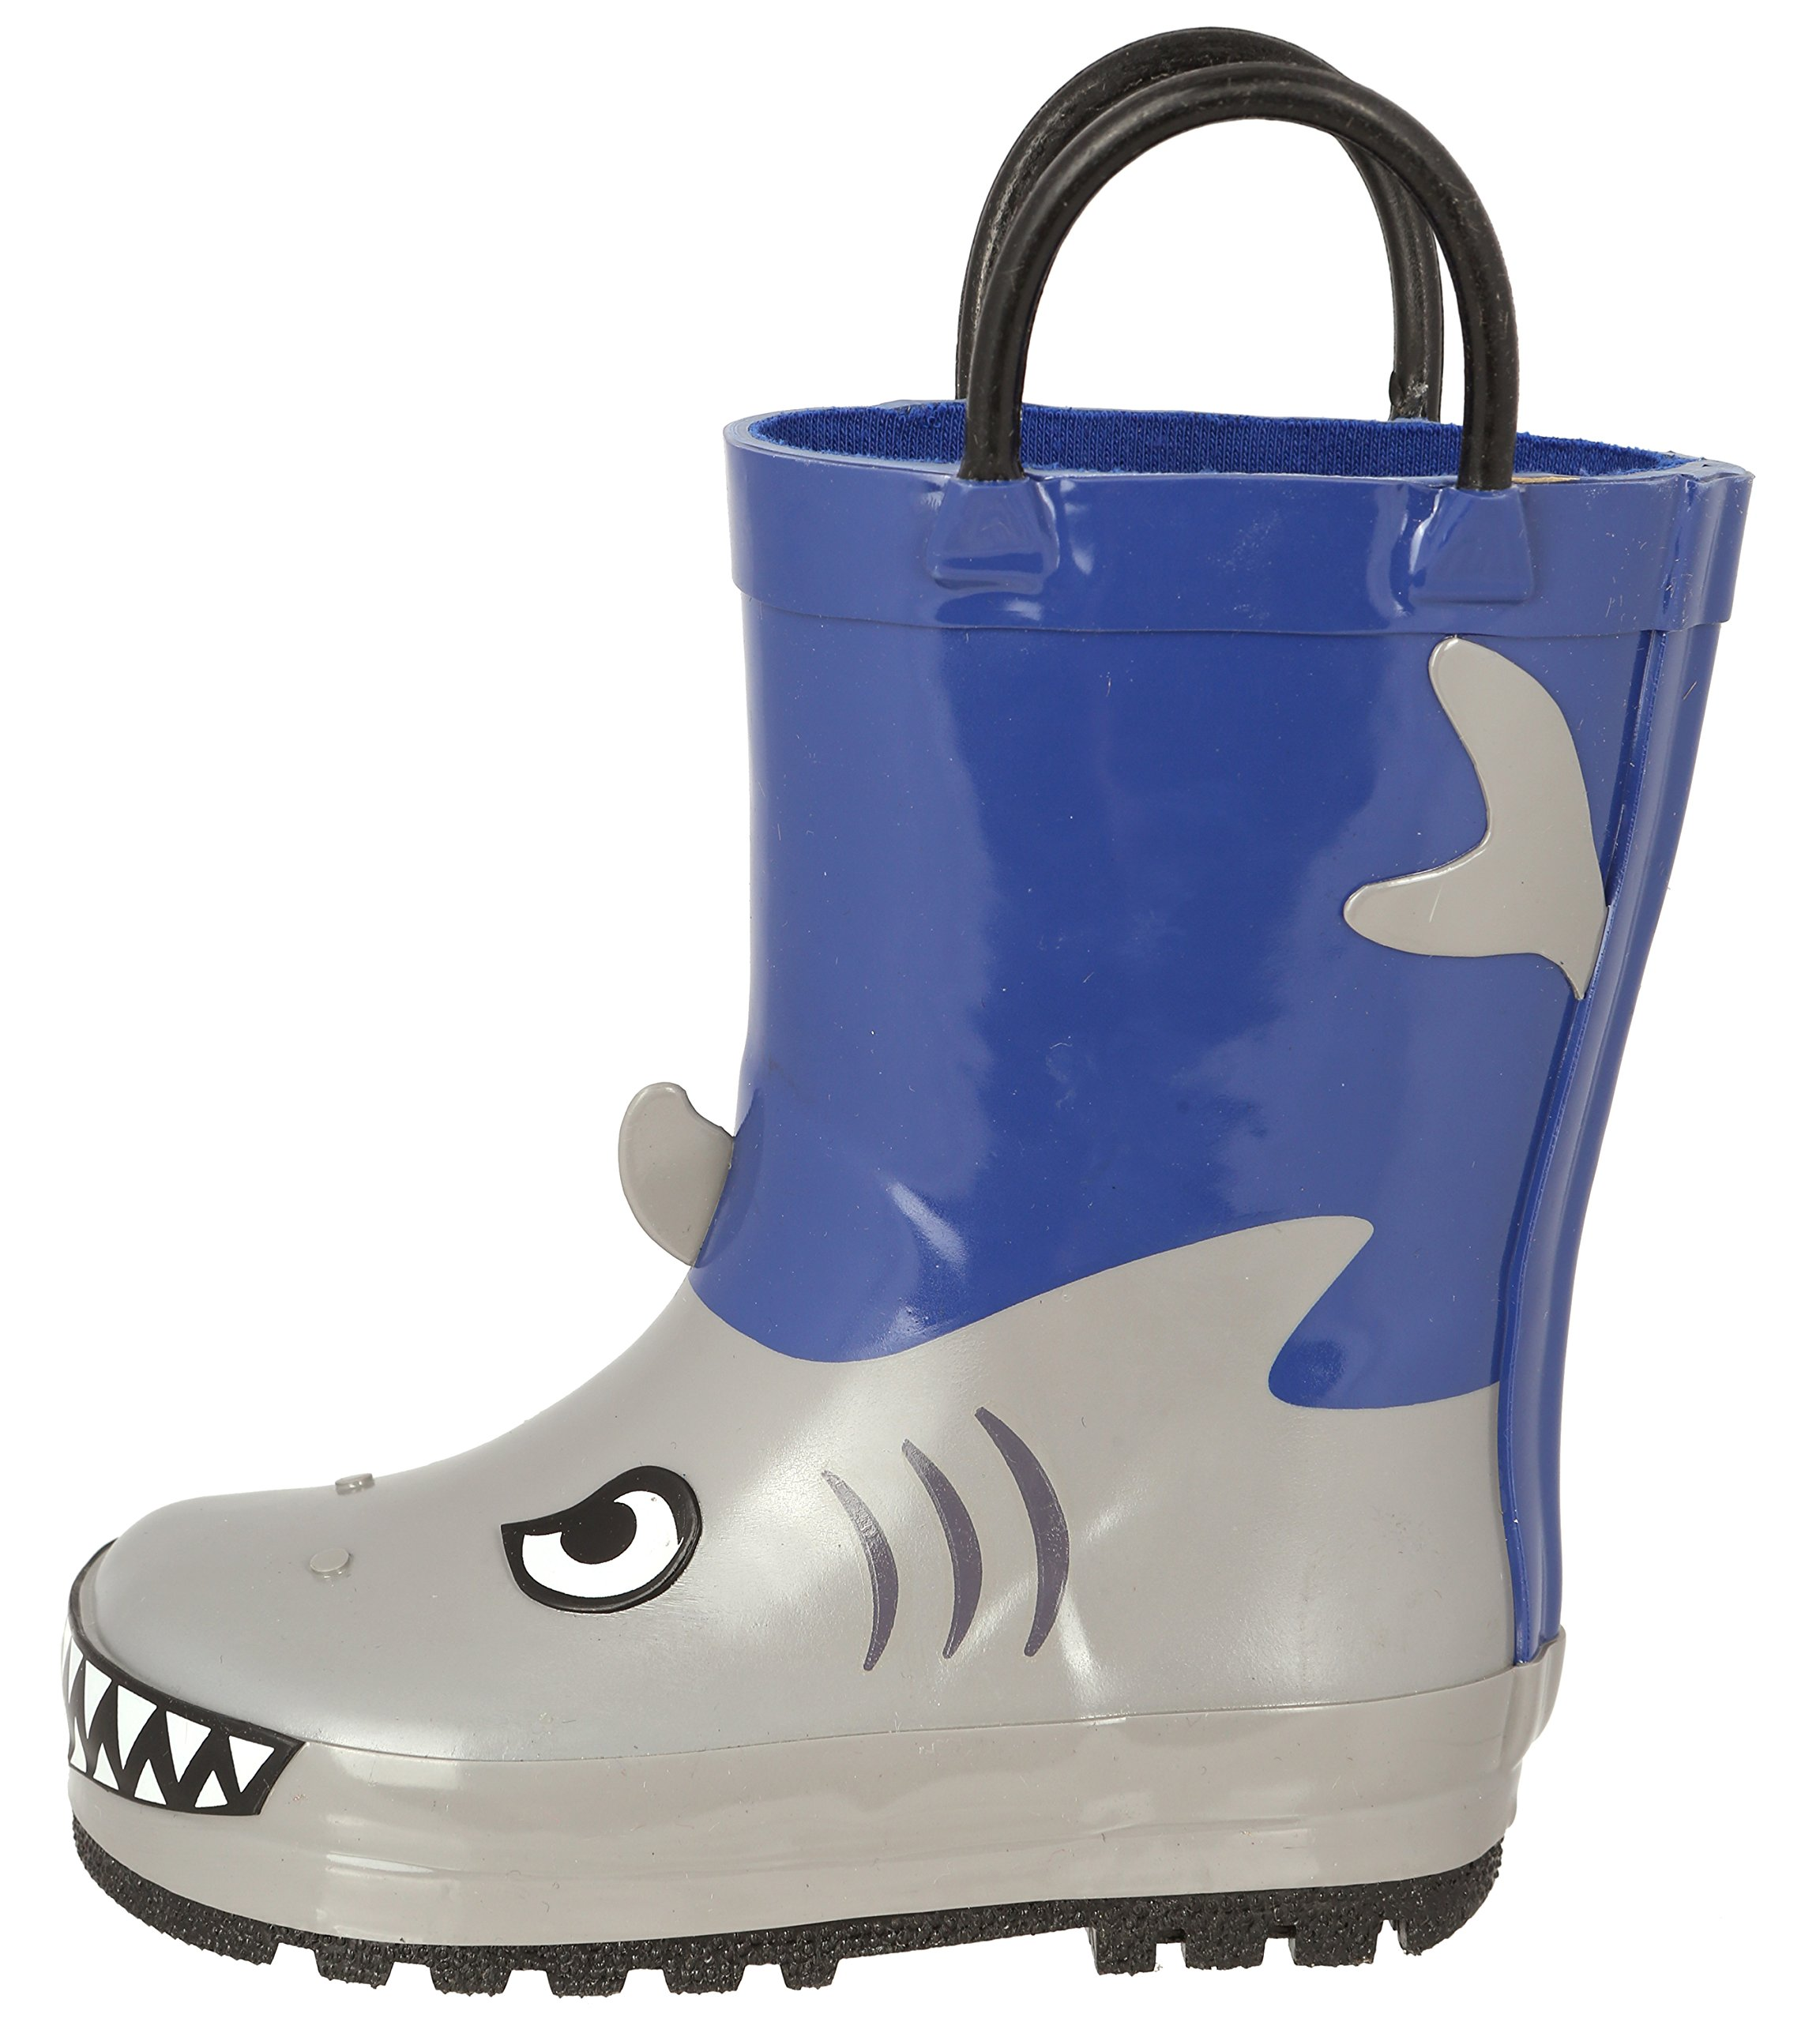 Image of the Capelli New York Toddler Boys Shiny Shark Attack Printed Rubber Rain Boot With Handles Grey Combo 7